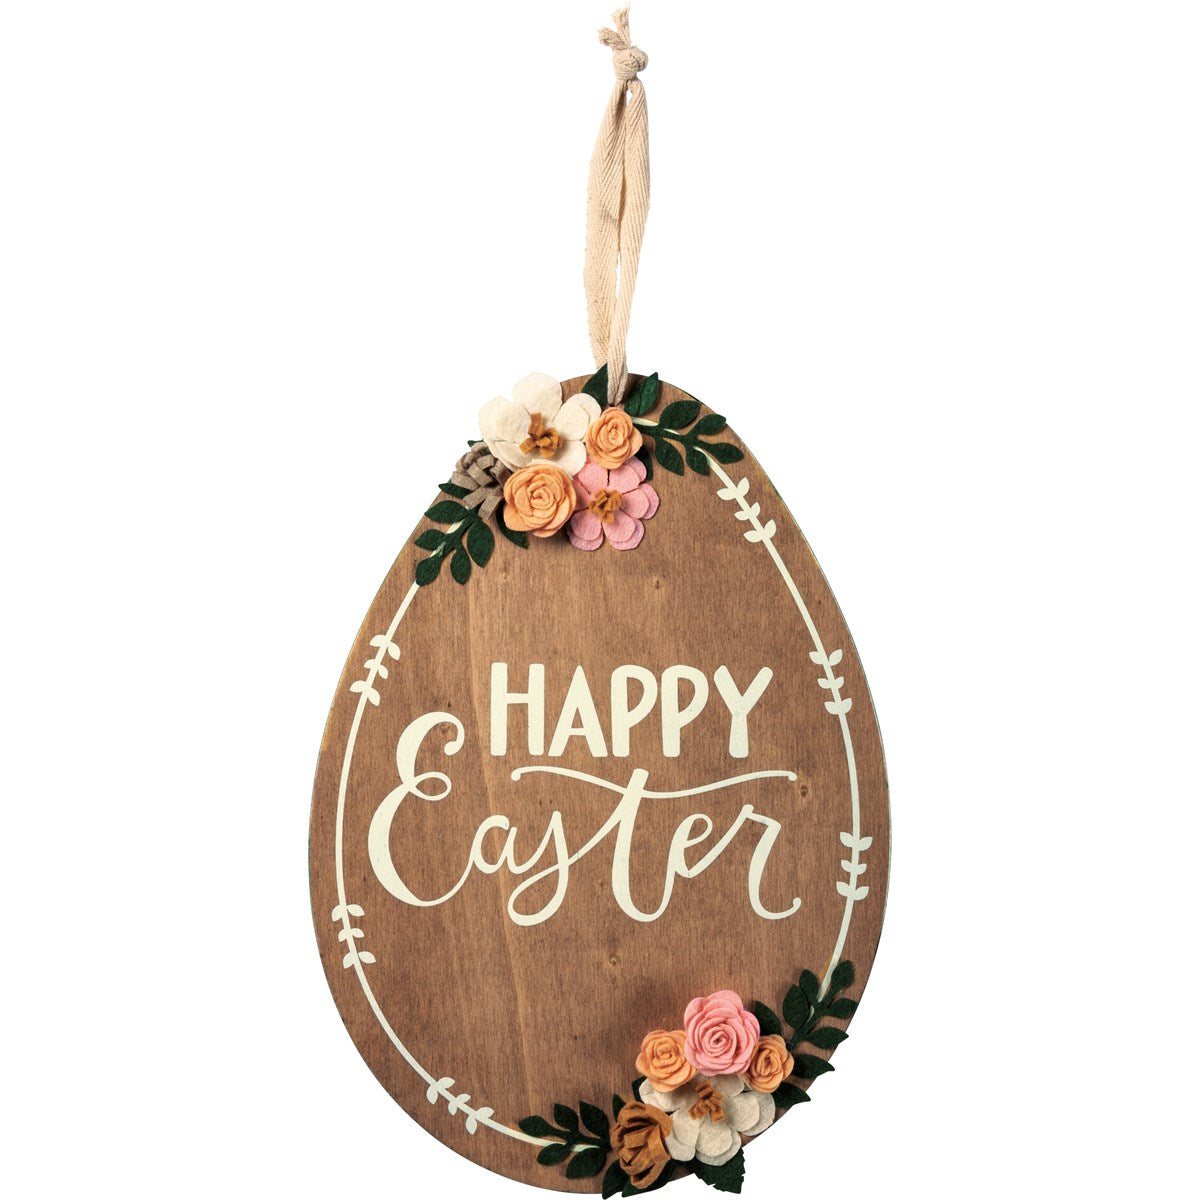 HAPPY EASTER WALL HANGER